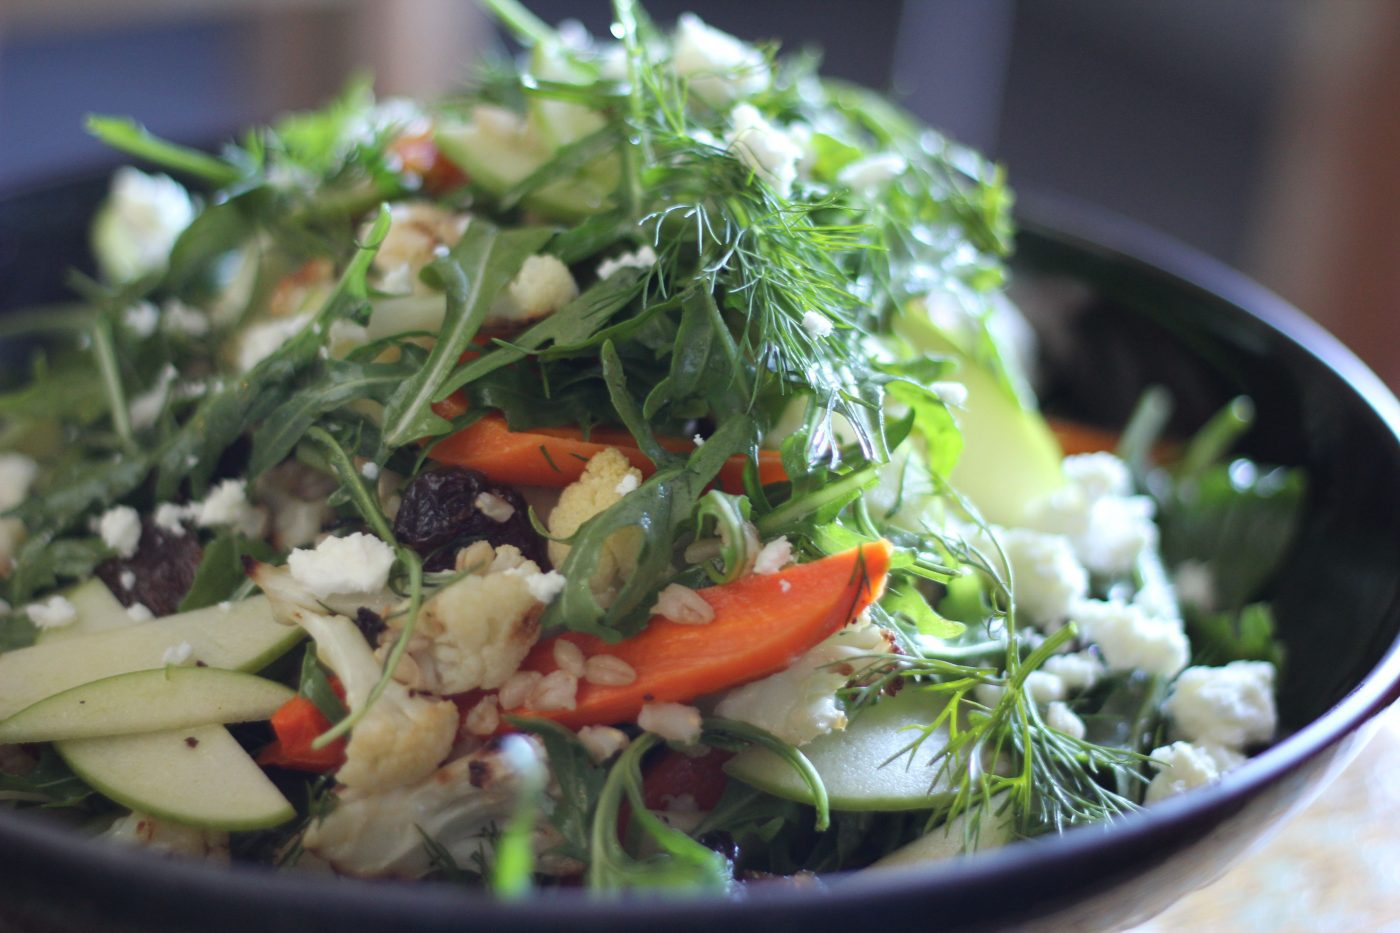 , Lunch salad of pearl barley with roasted cauliflower and carrots